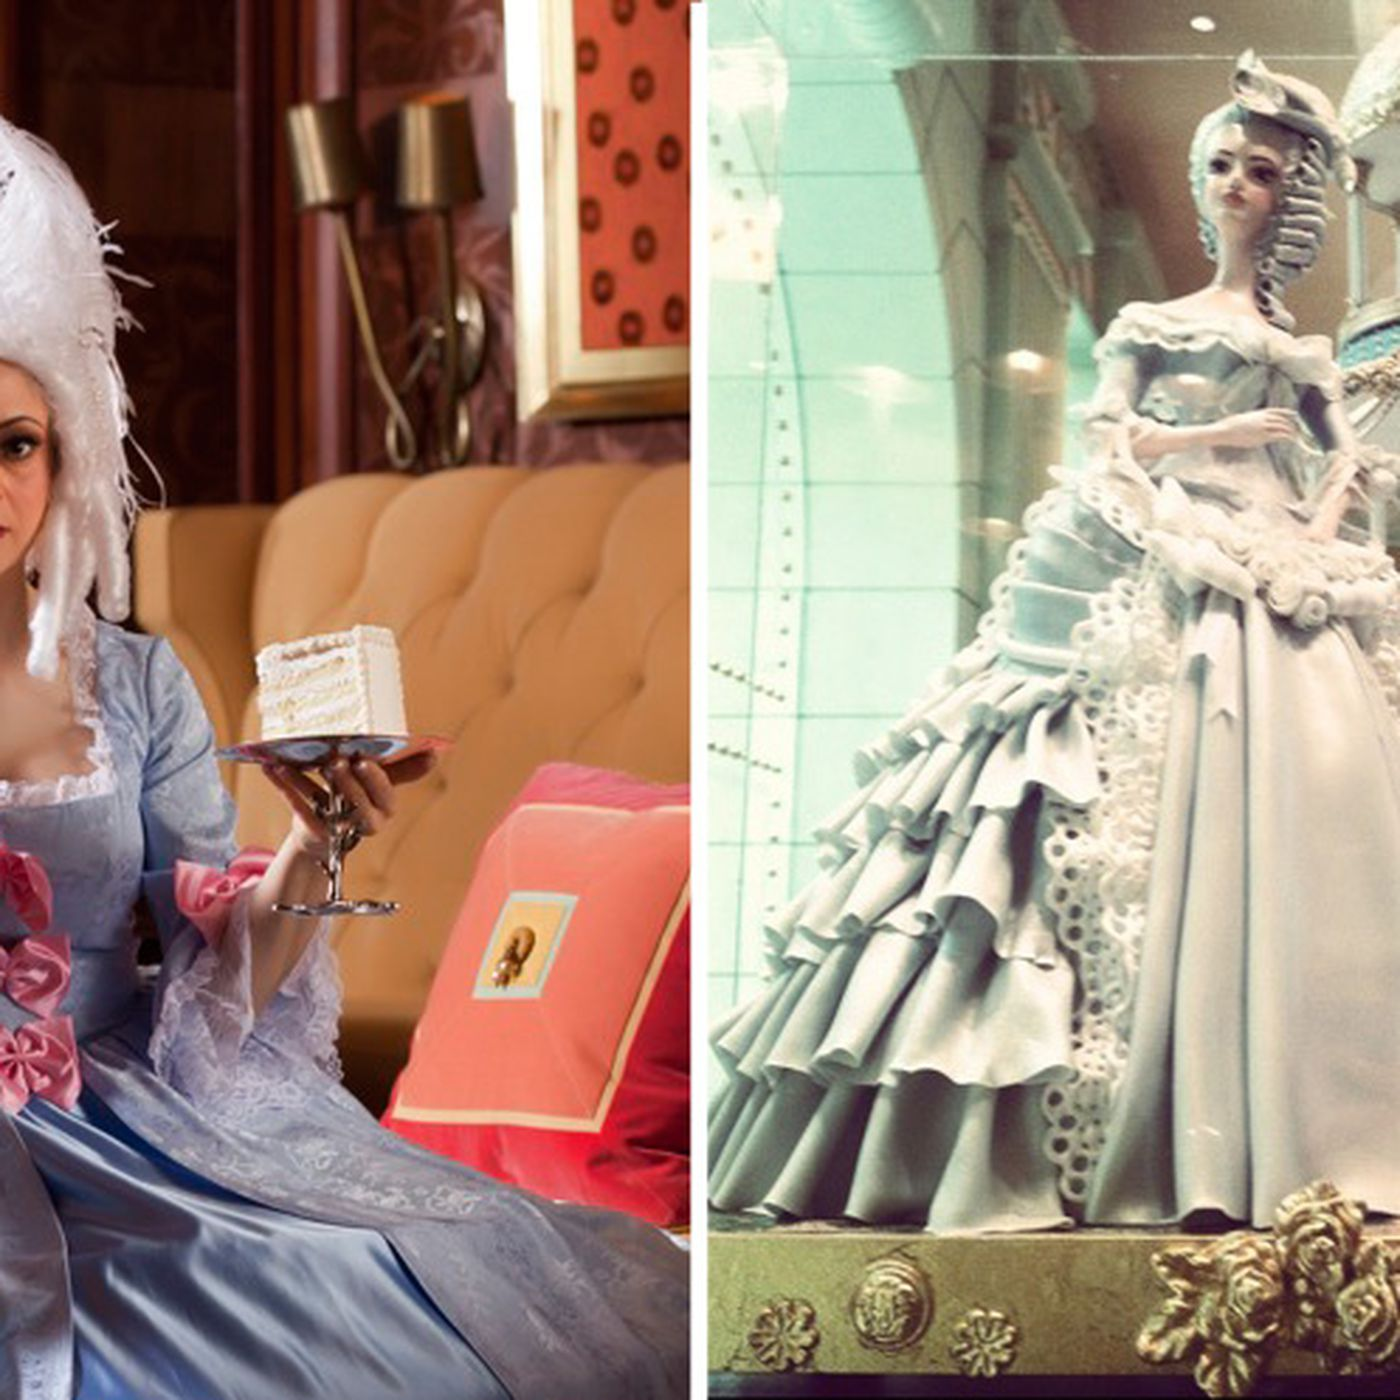 Let Them Eat Cake: Flora Aghababyan Channels Marie Antoinette and ...